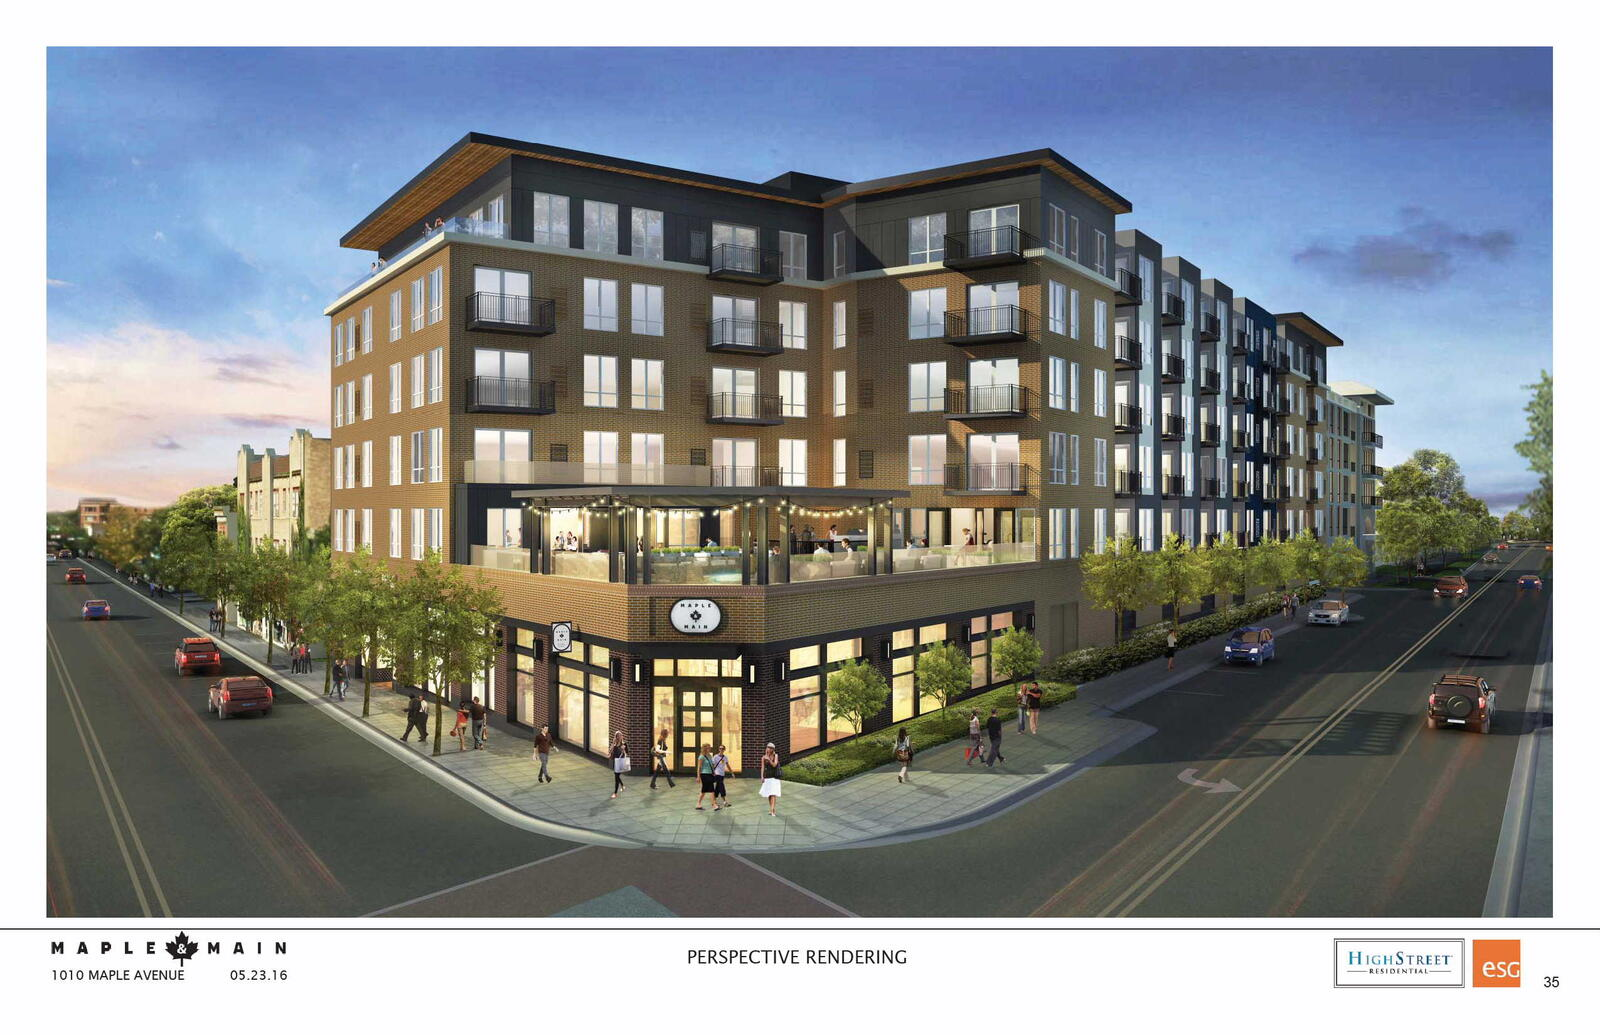 New Retail And Residential Space Coming To Maple Main